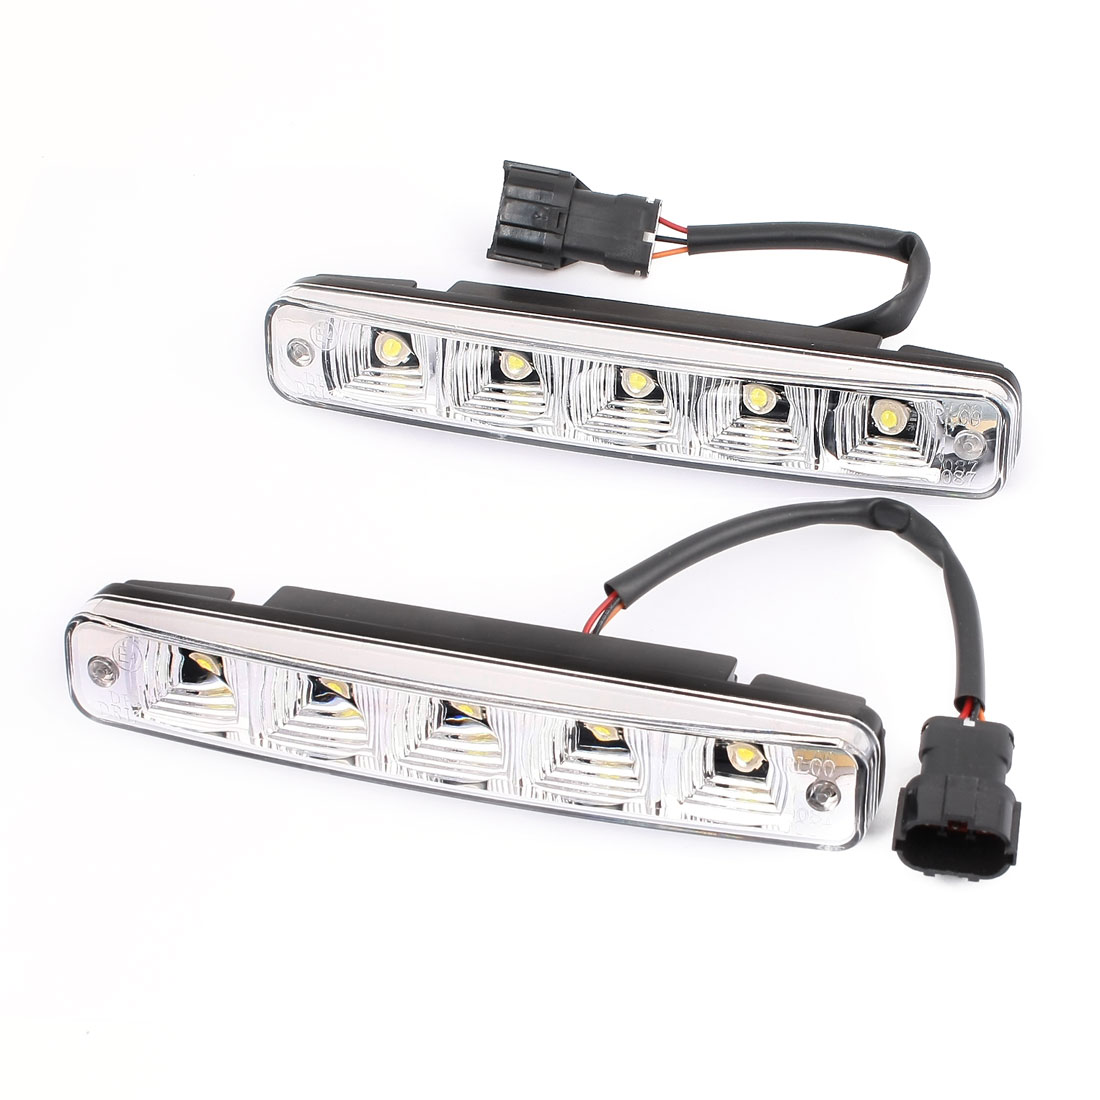 2 Pcs Car White 5-LED DRL Daytime Running Light Headlamp Driving Lamp 12V